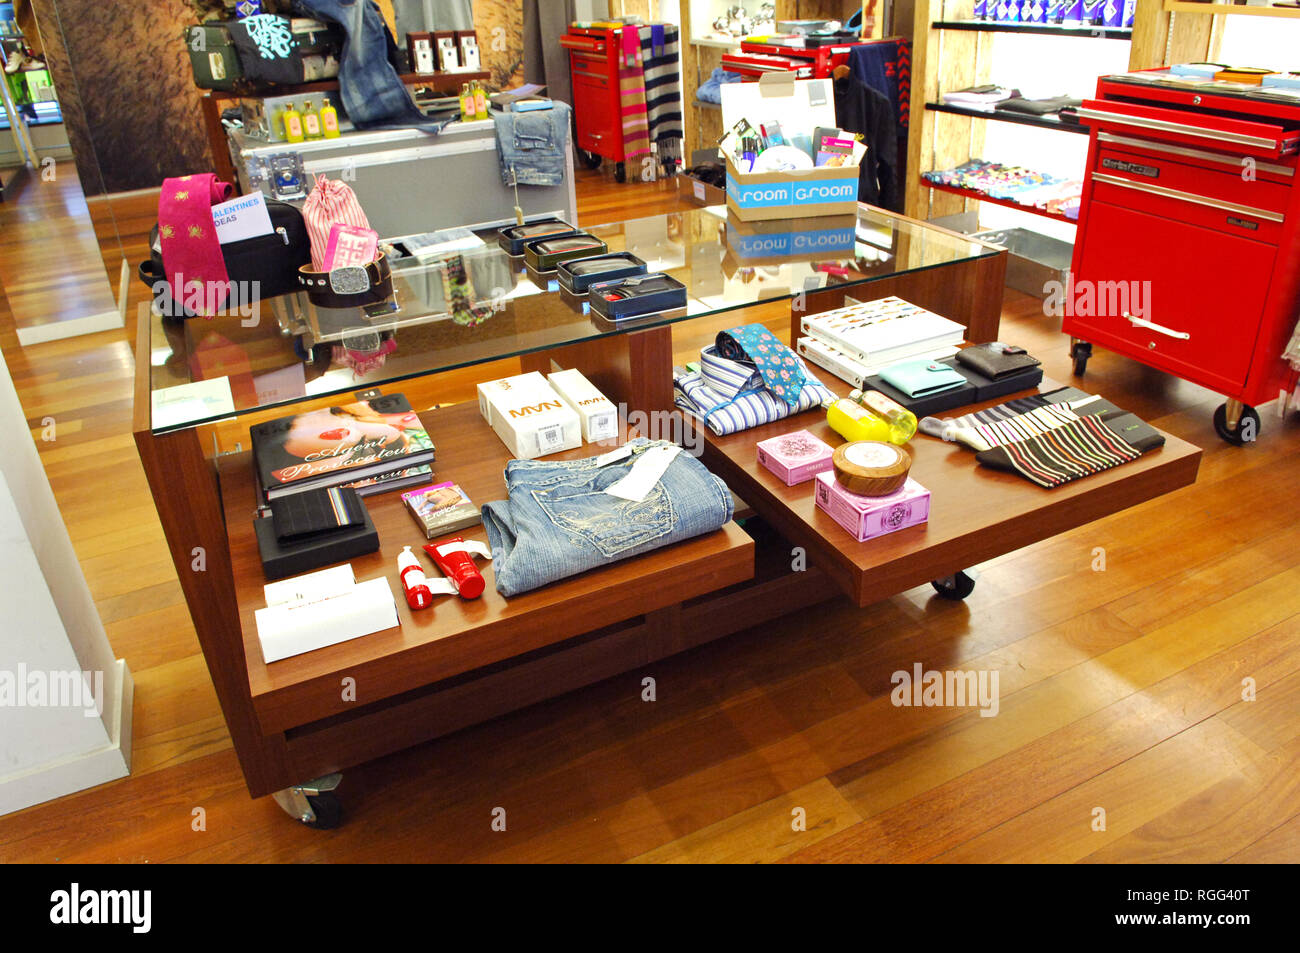 Products for sale in a mens product, beauty and fashion shop - Stock Image